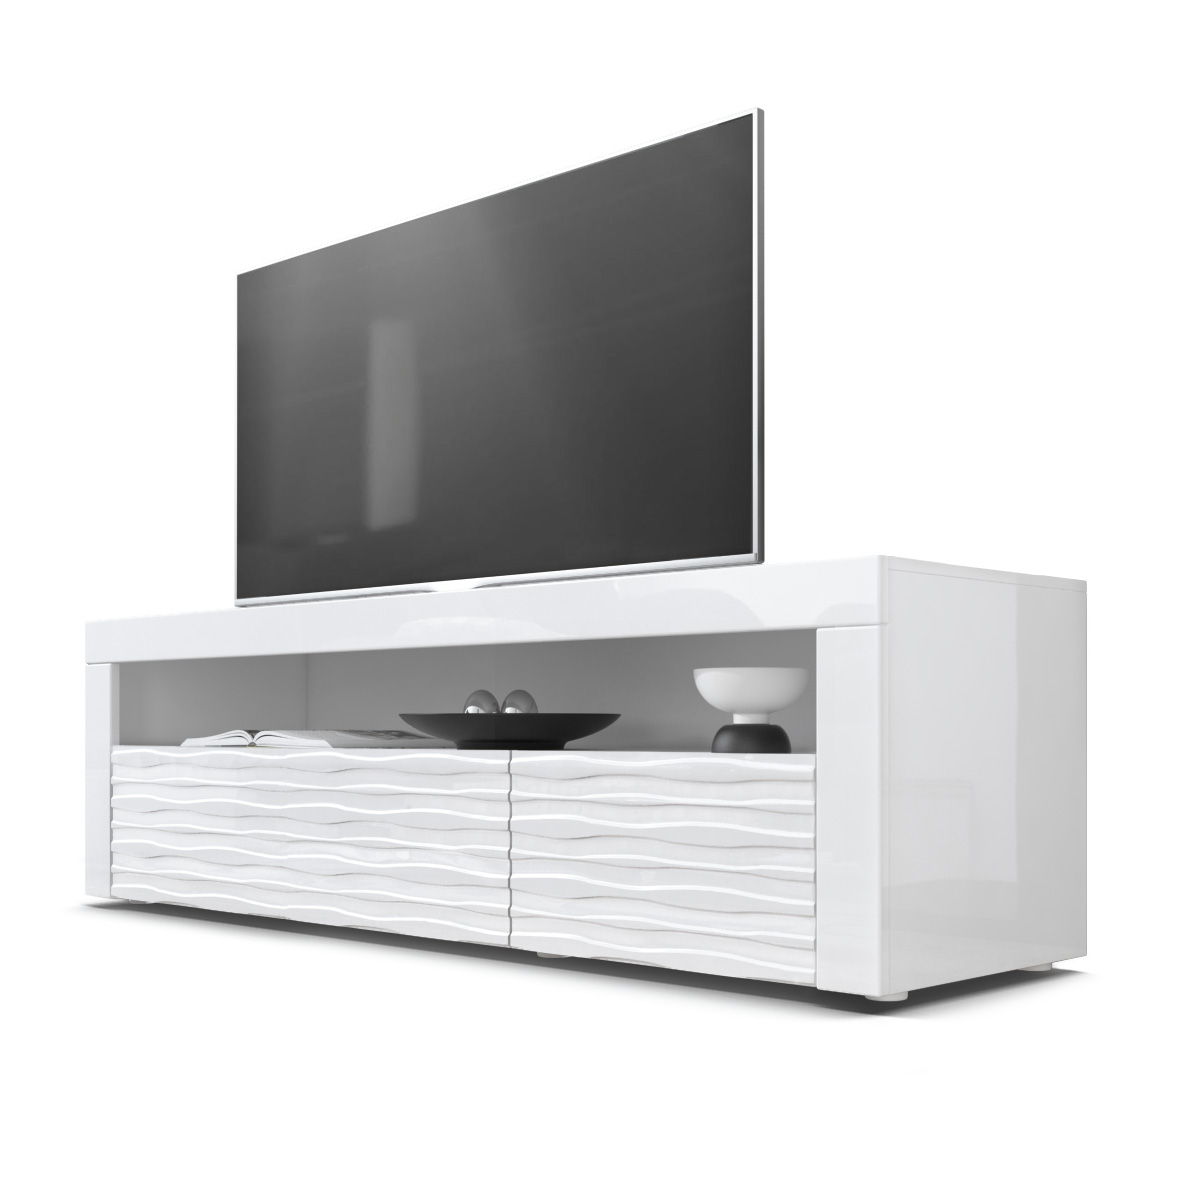 sideboard tv board kommode schrank lowboard valencia in wei mit 3d fronten ebay. Black Bedroom Furniture Sets. Home Design Ideas